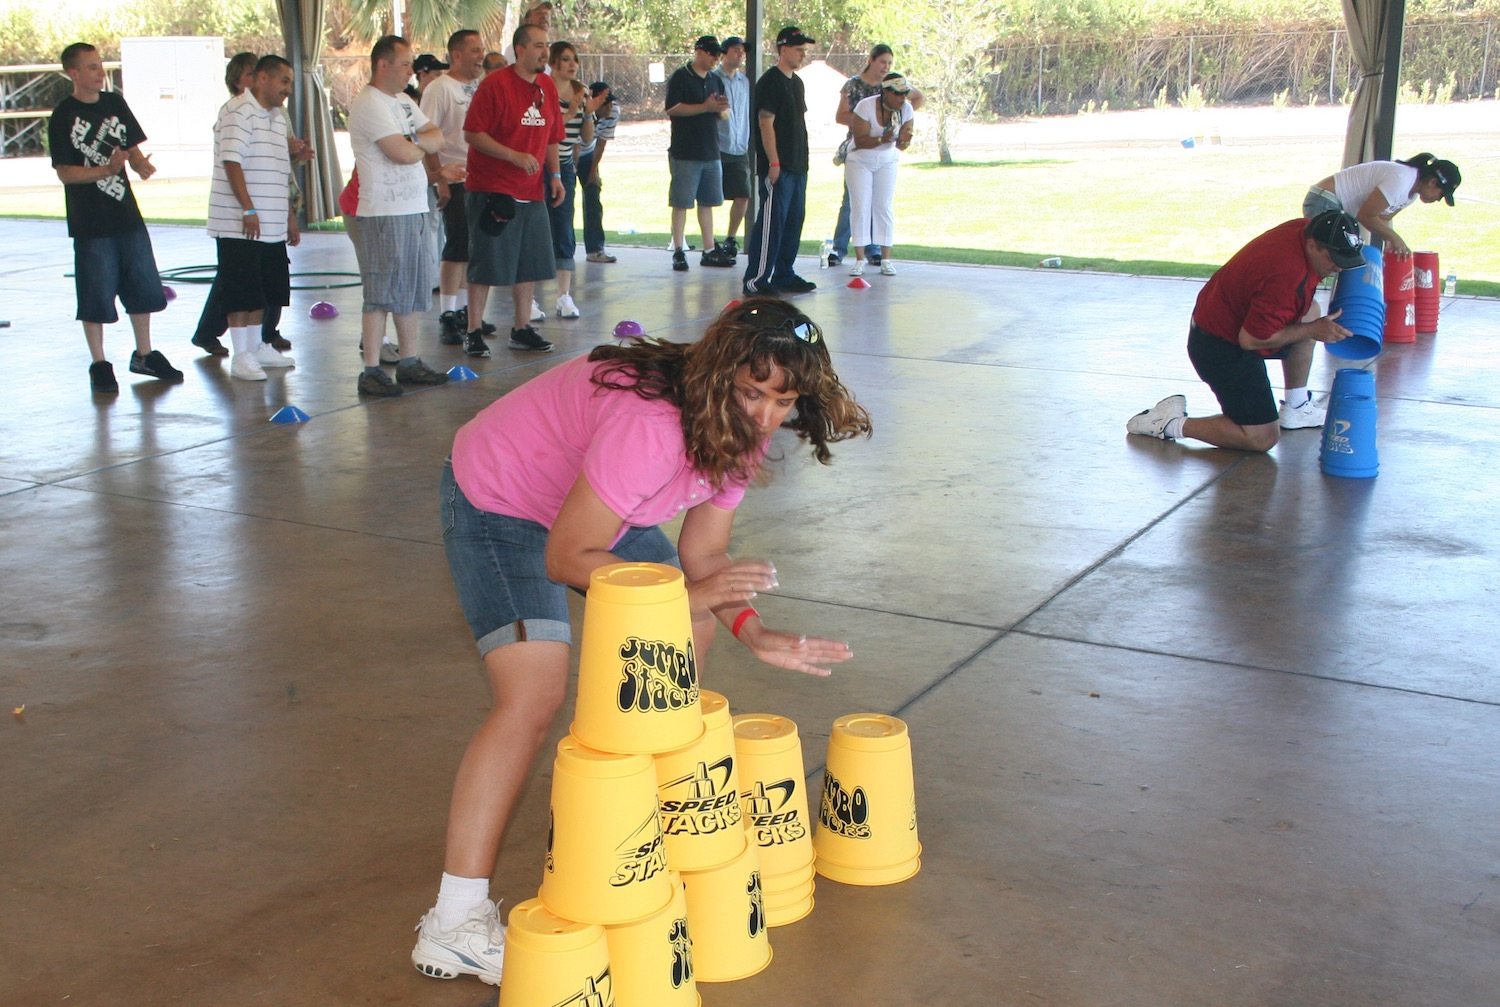 Minute to win it-style games and cooperative team challenges